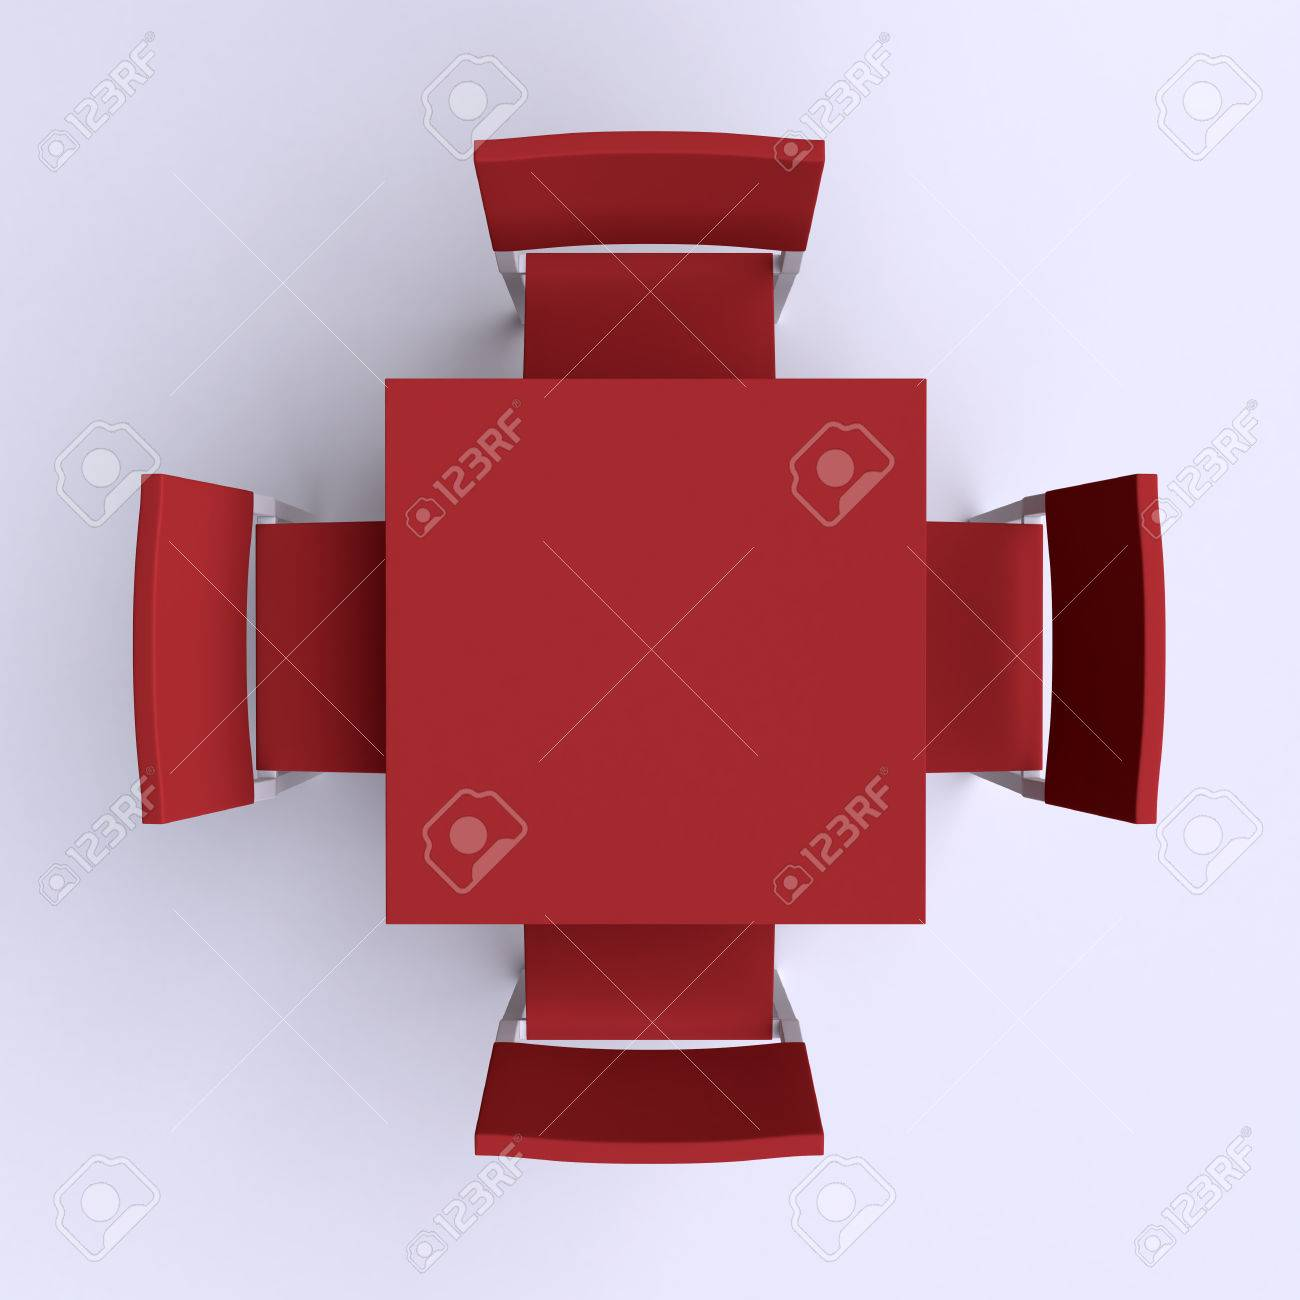 Table and chairs top view - Square Table With Four Chairs Top View 3d Illustration Stock Illustration 41087373